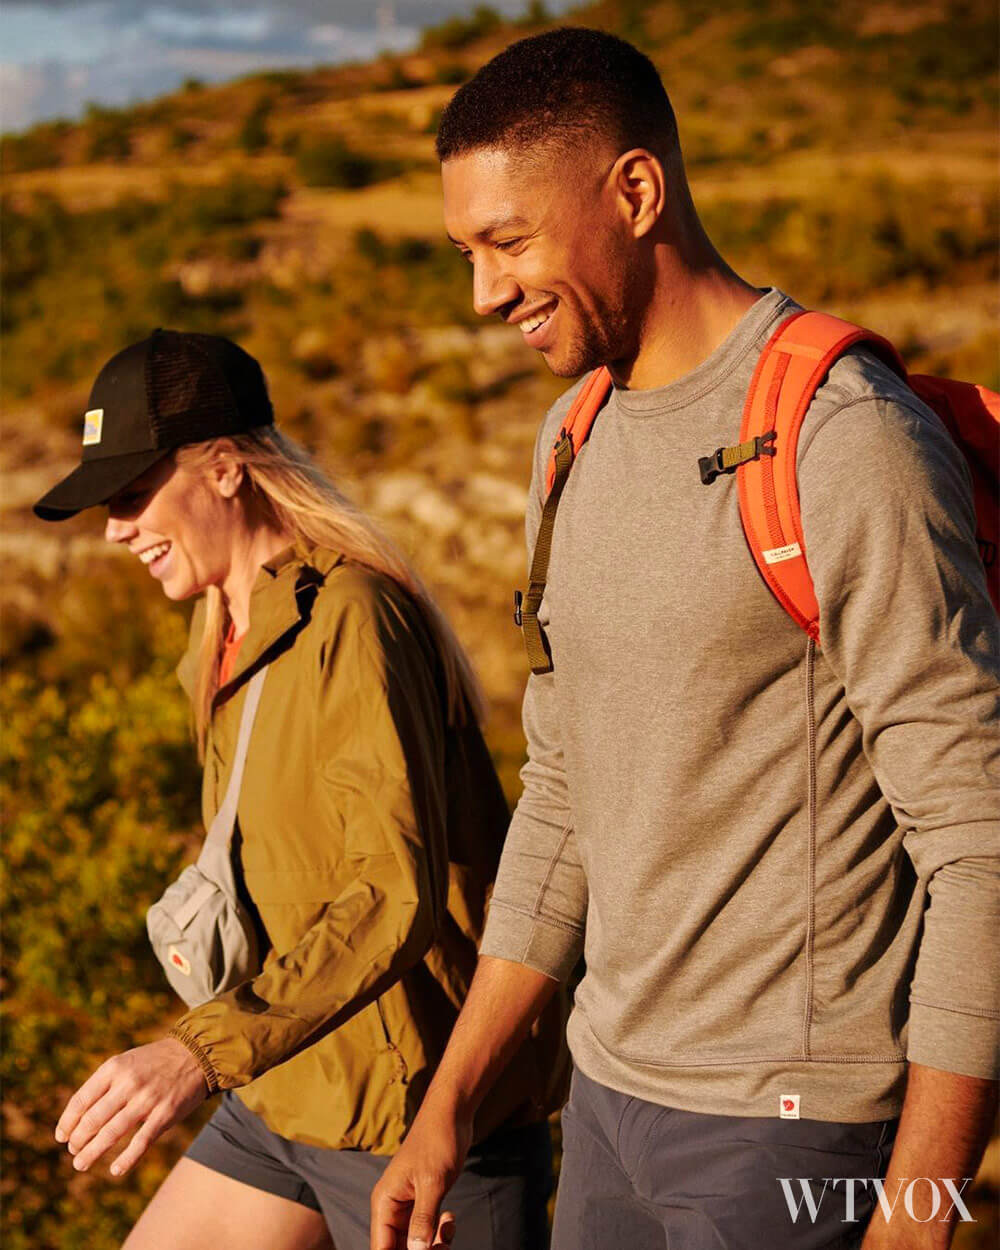 Fjallraven Outdoor clothing brand